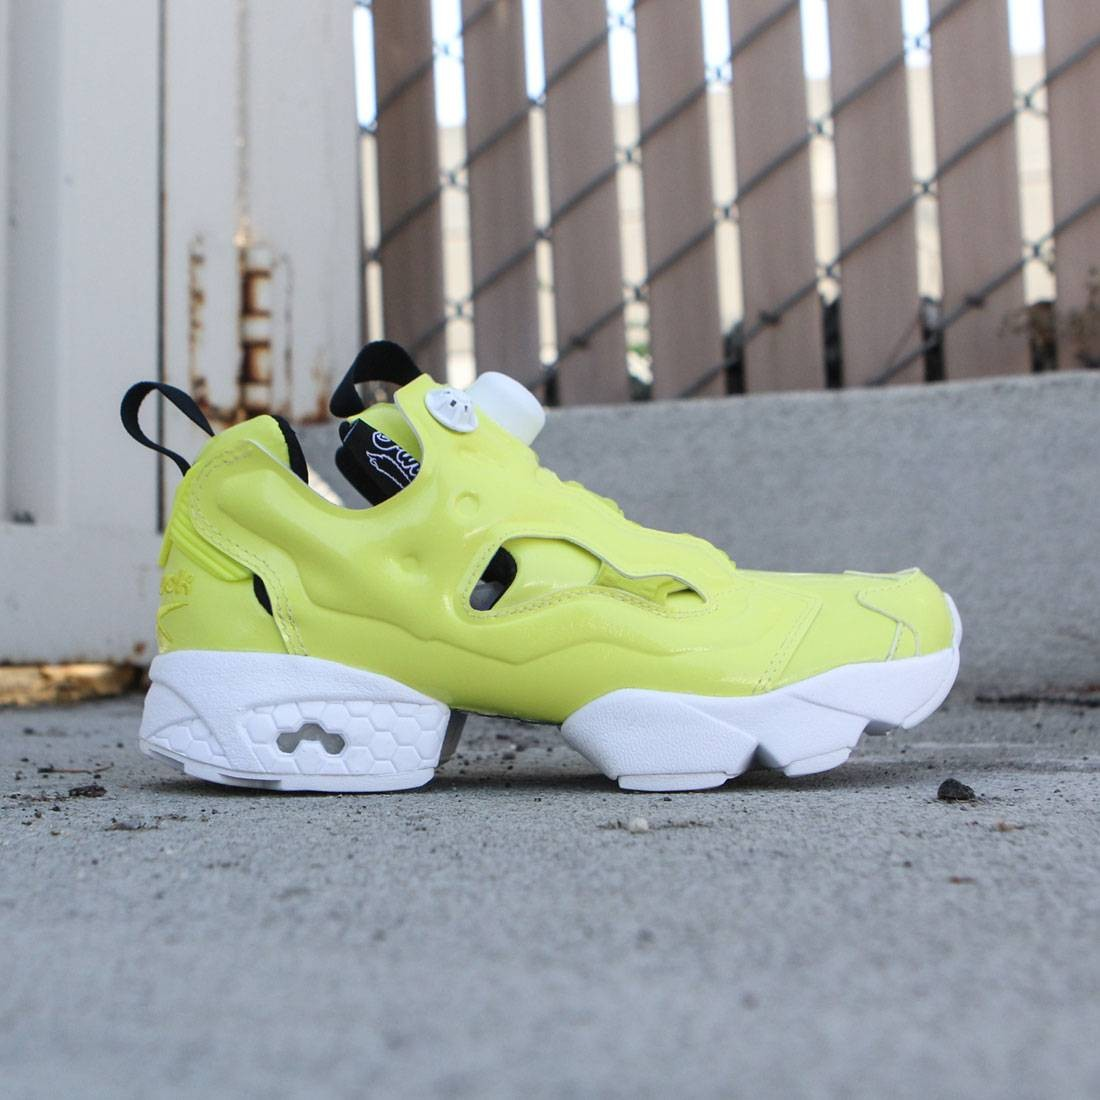 f09e8e62a13e4f Reebok Women InstaPump Fury Overbranded yellow hero yellow white black